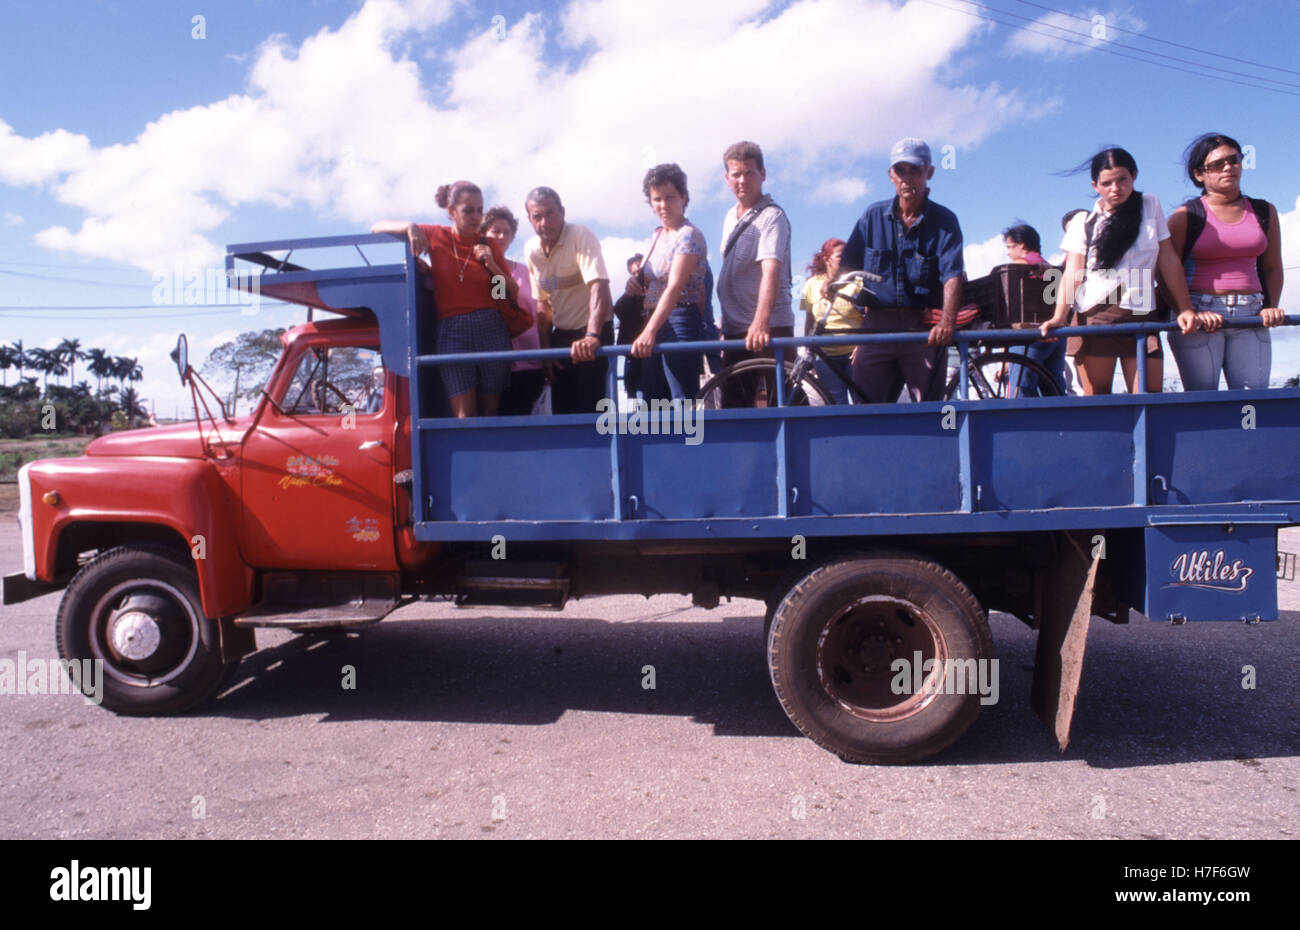 In Cuba it is mandatory to pick up hitchhikers, as seen on this photograph, all different kinds of people were picked - Stock Image